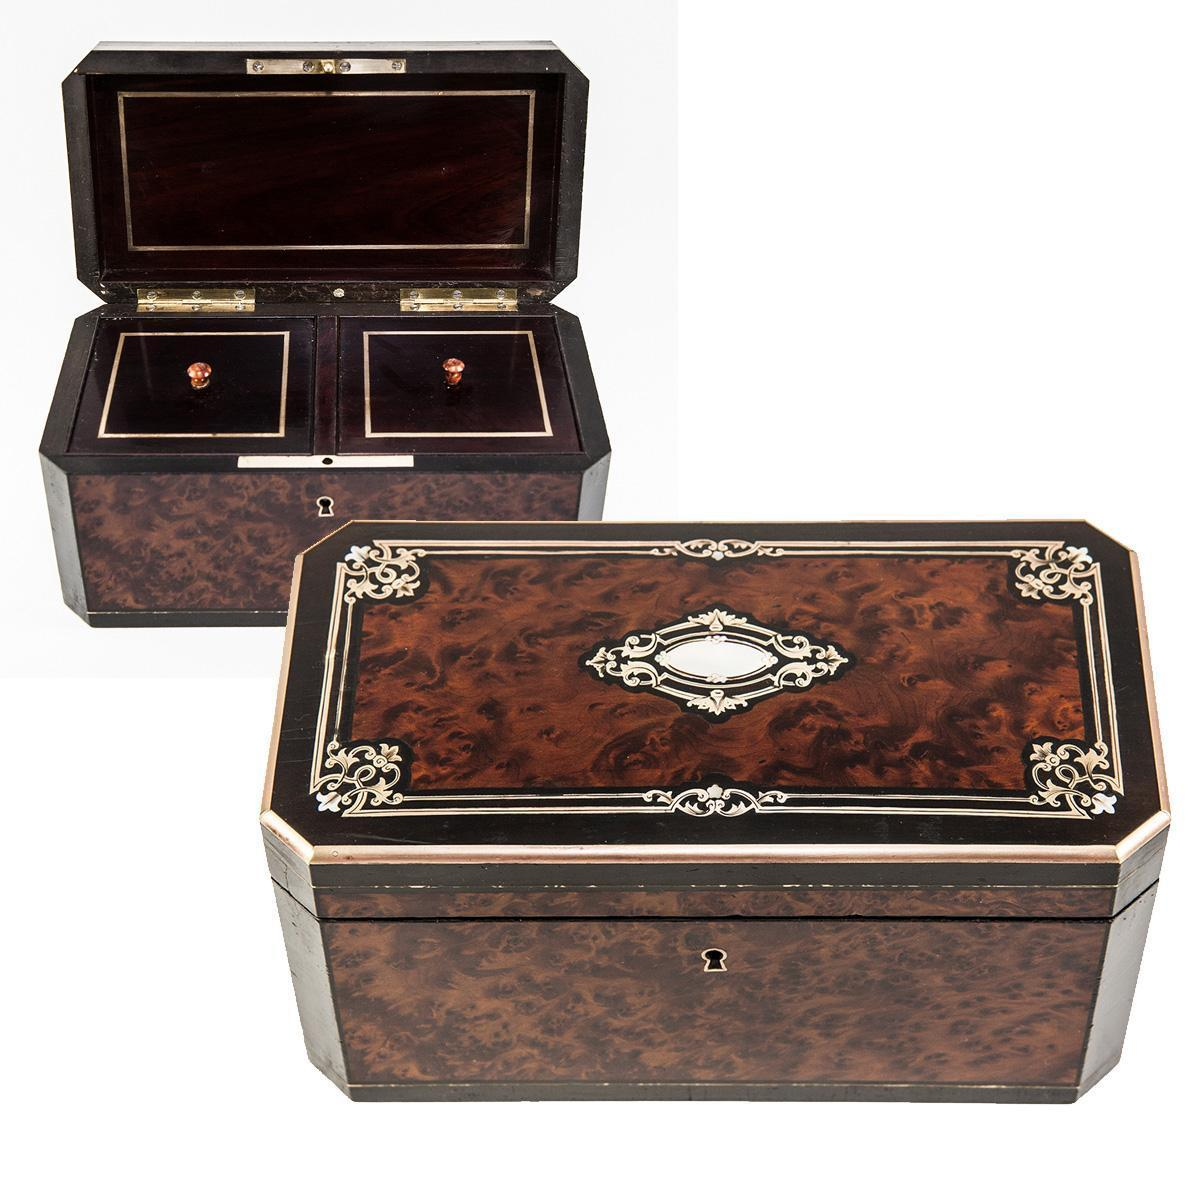 Fine Antique French Tea Caddy, Napoleon III Boulle Brass Inlays, Double Well c. 1850-70